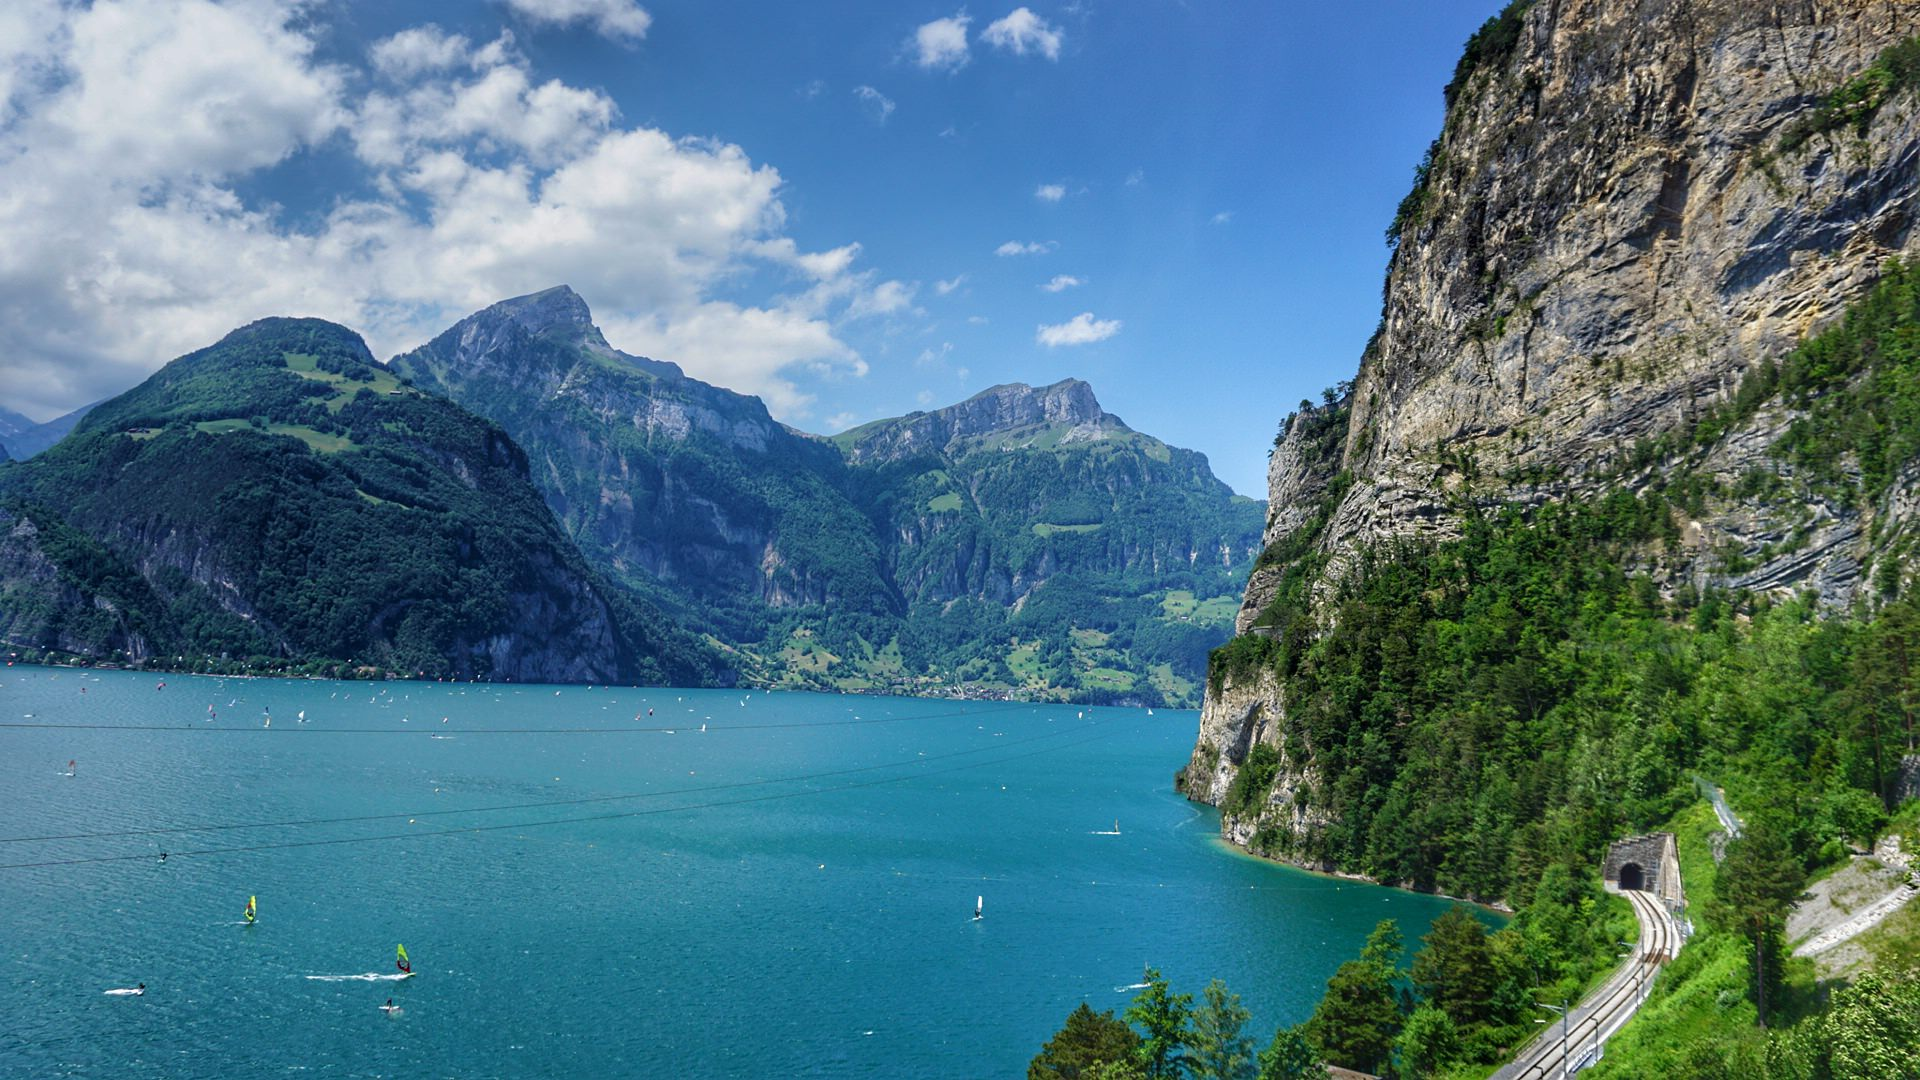 Perfect lakeside hike in Switzerland